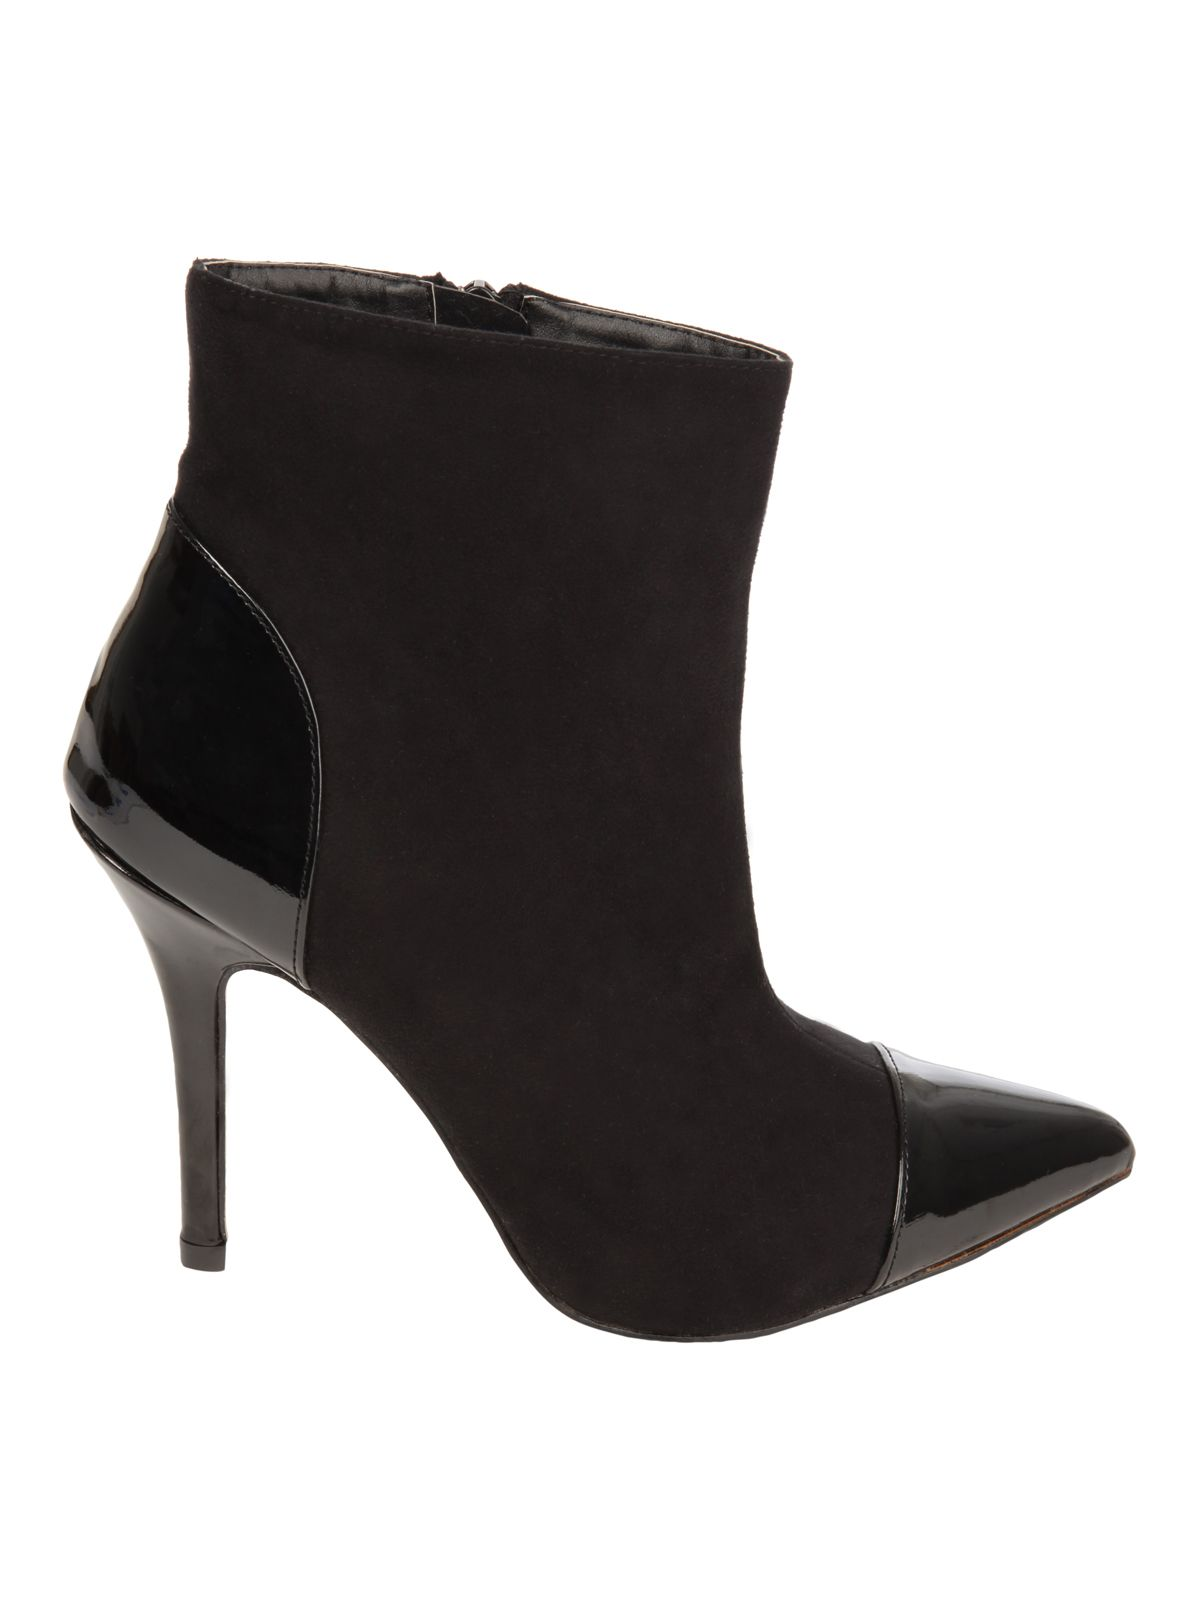 Black pointed ankle boot